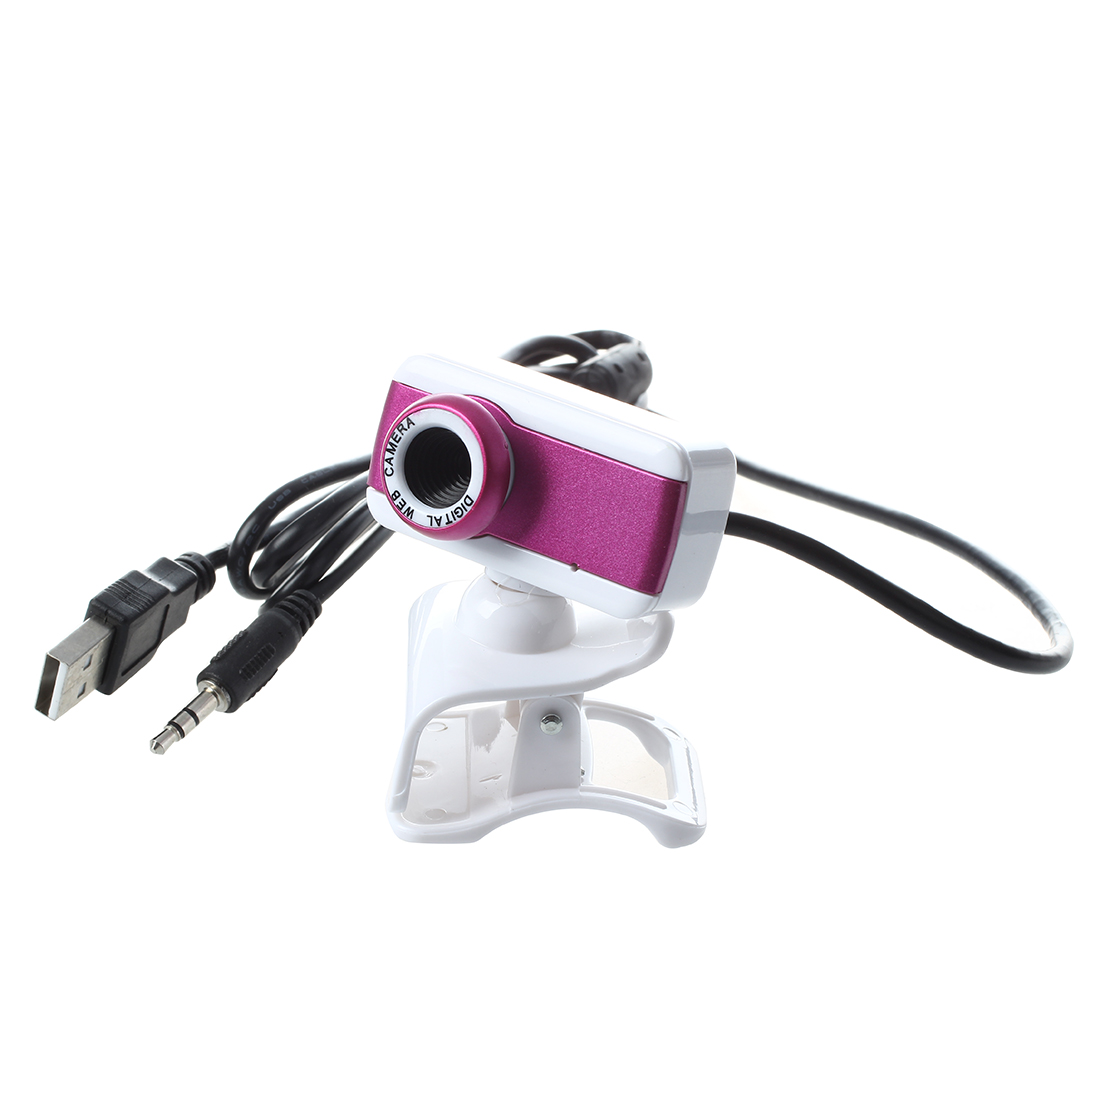 USB 2.0 HD Webcam Camera 1080P With miniphone for Computer Desktop PC Laptop Rose